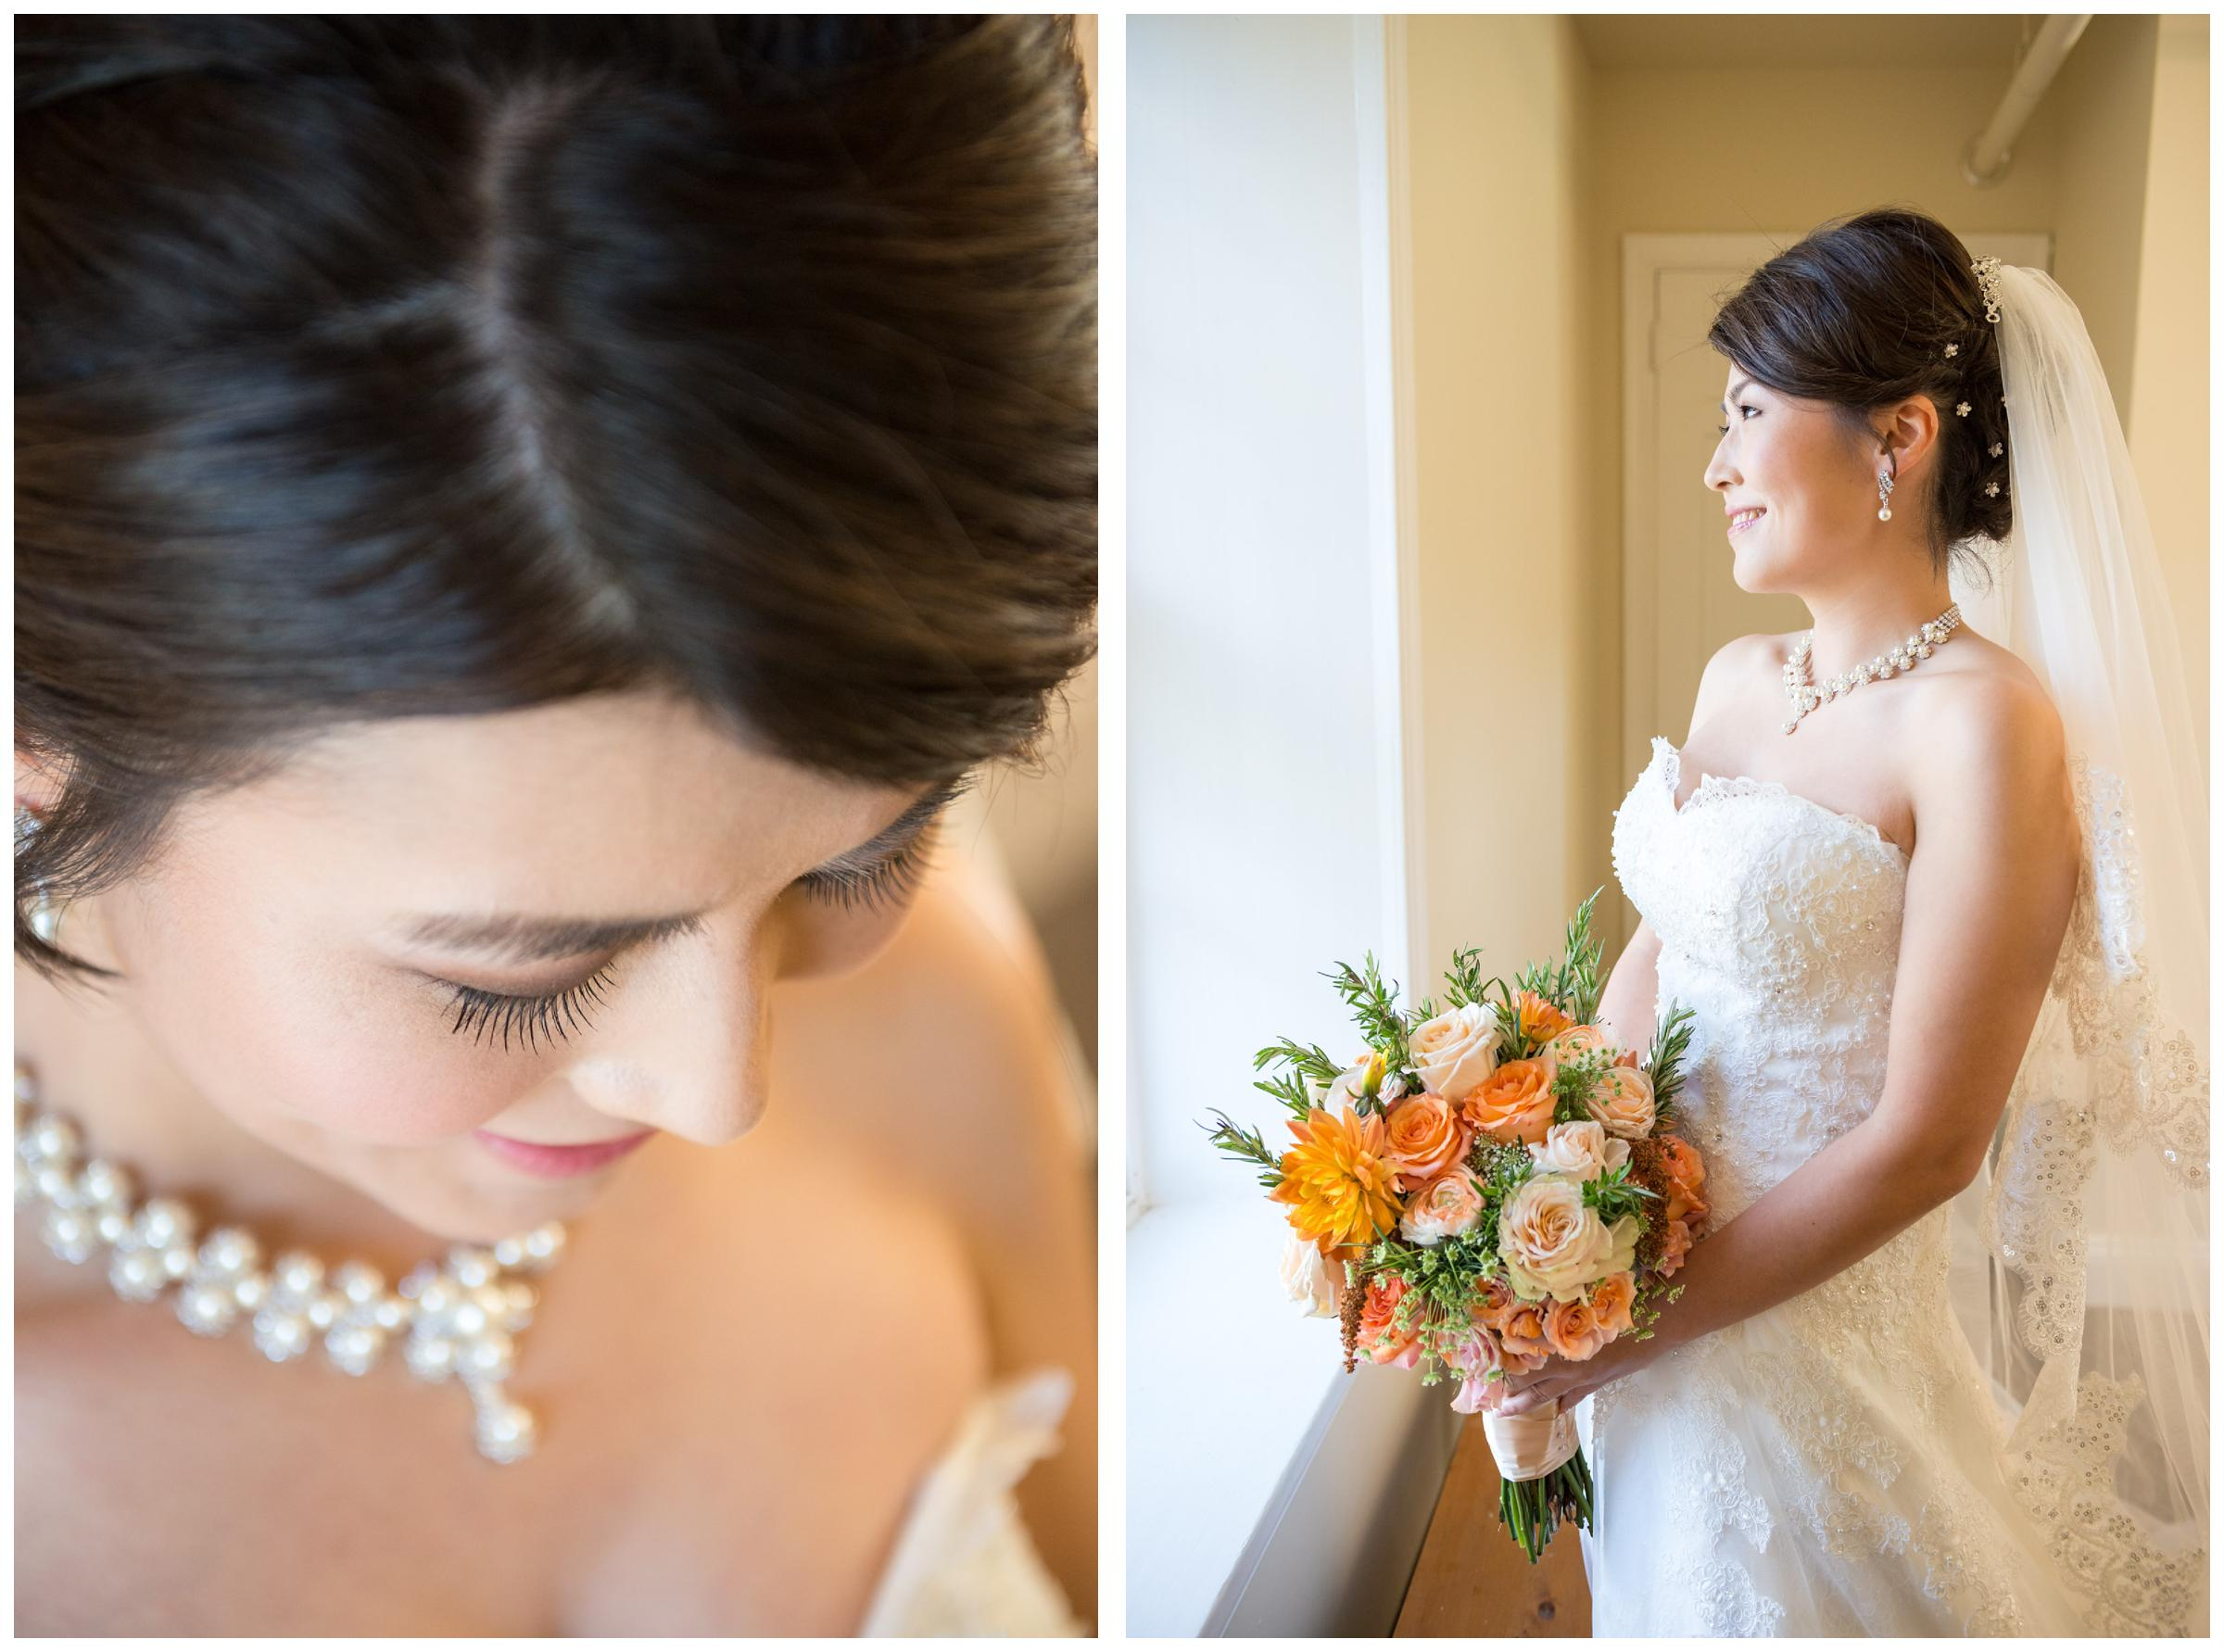 Bride looking out window before wedding ceremony.